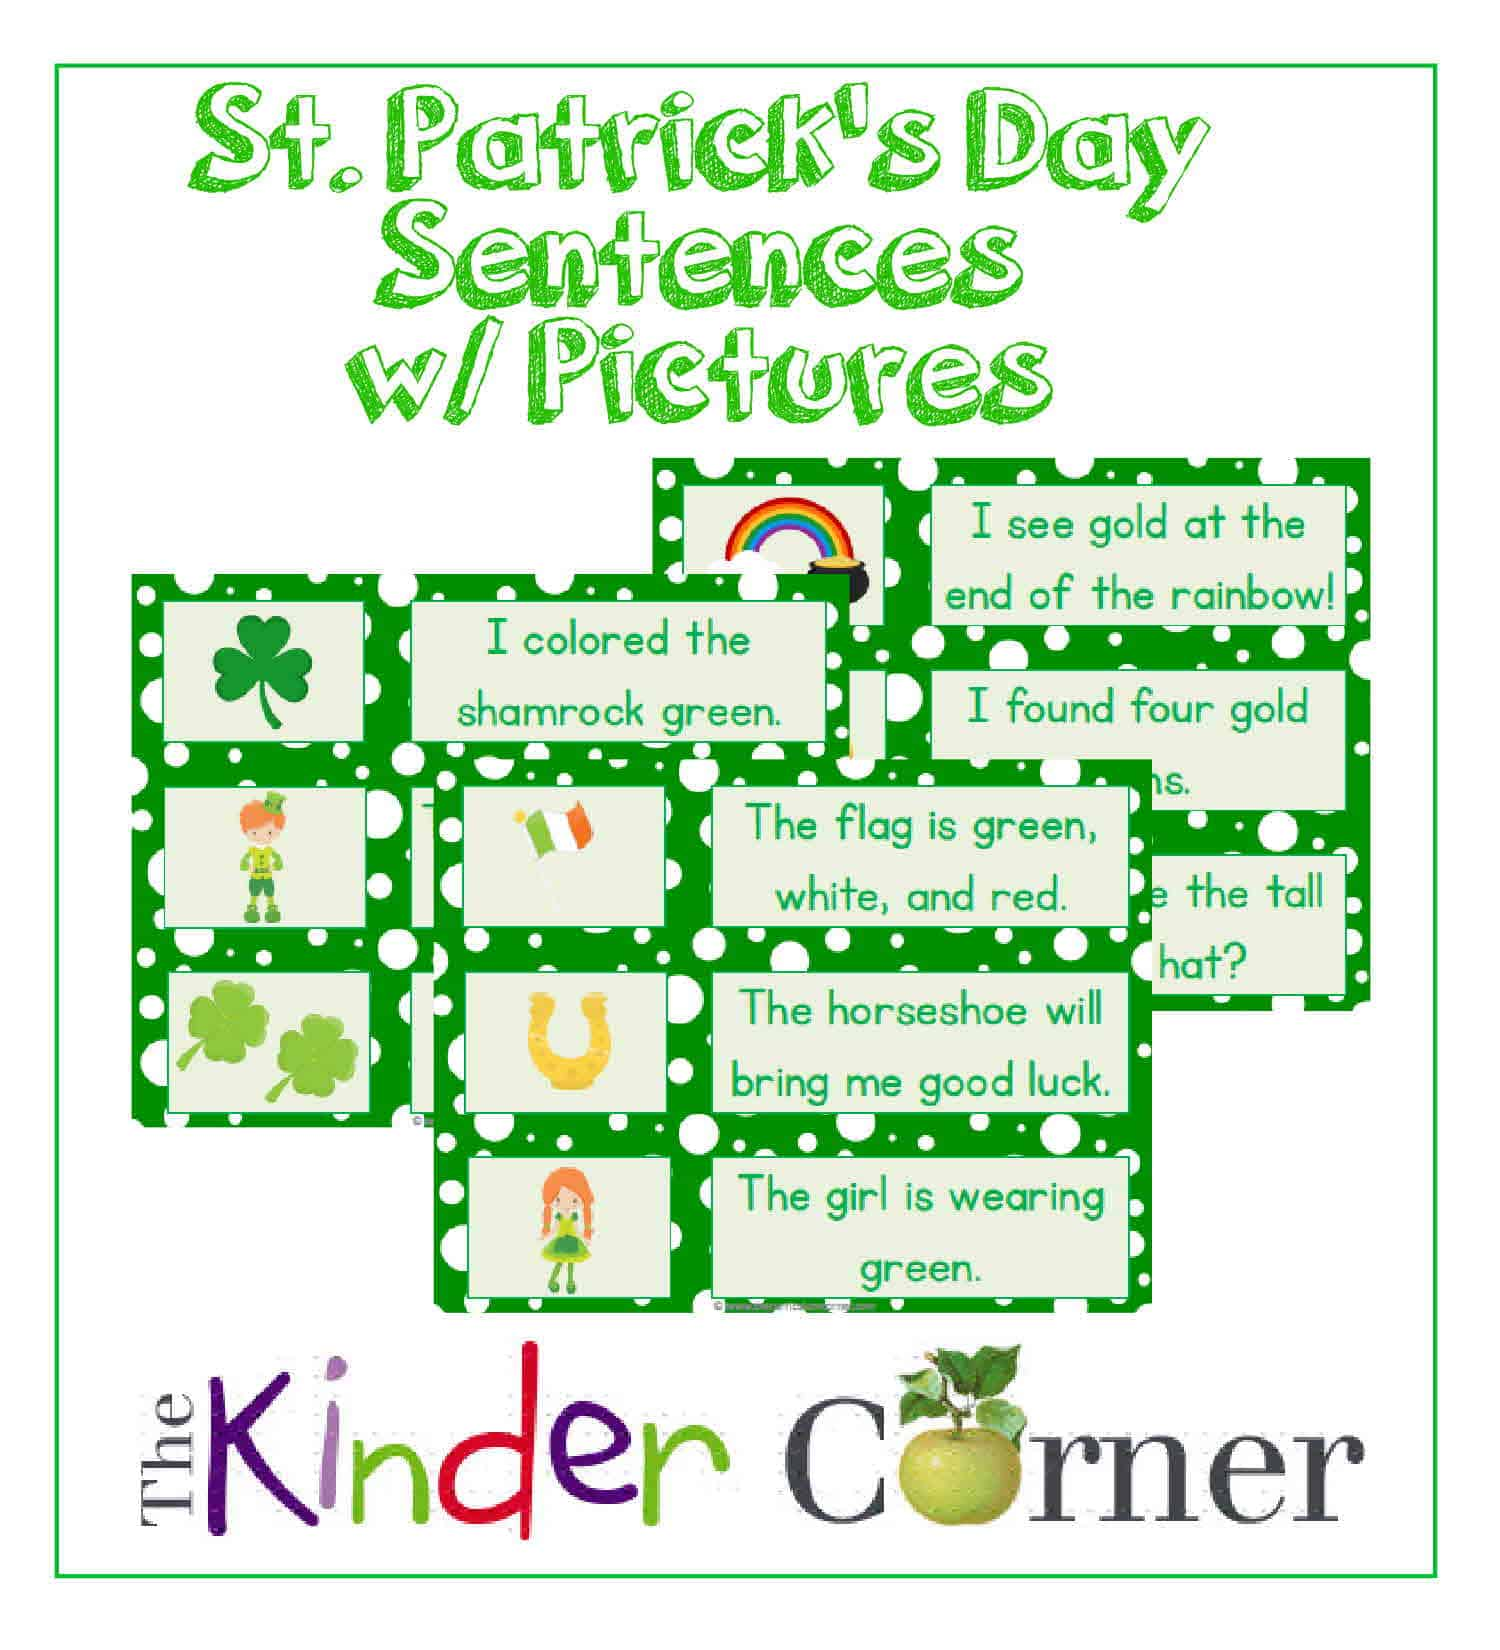 St. Patrick's Day Sentence Cards w/ Pictures